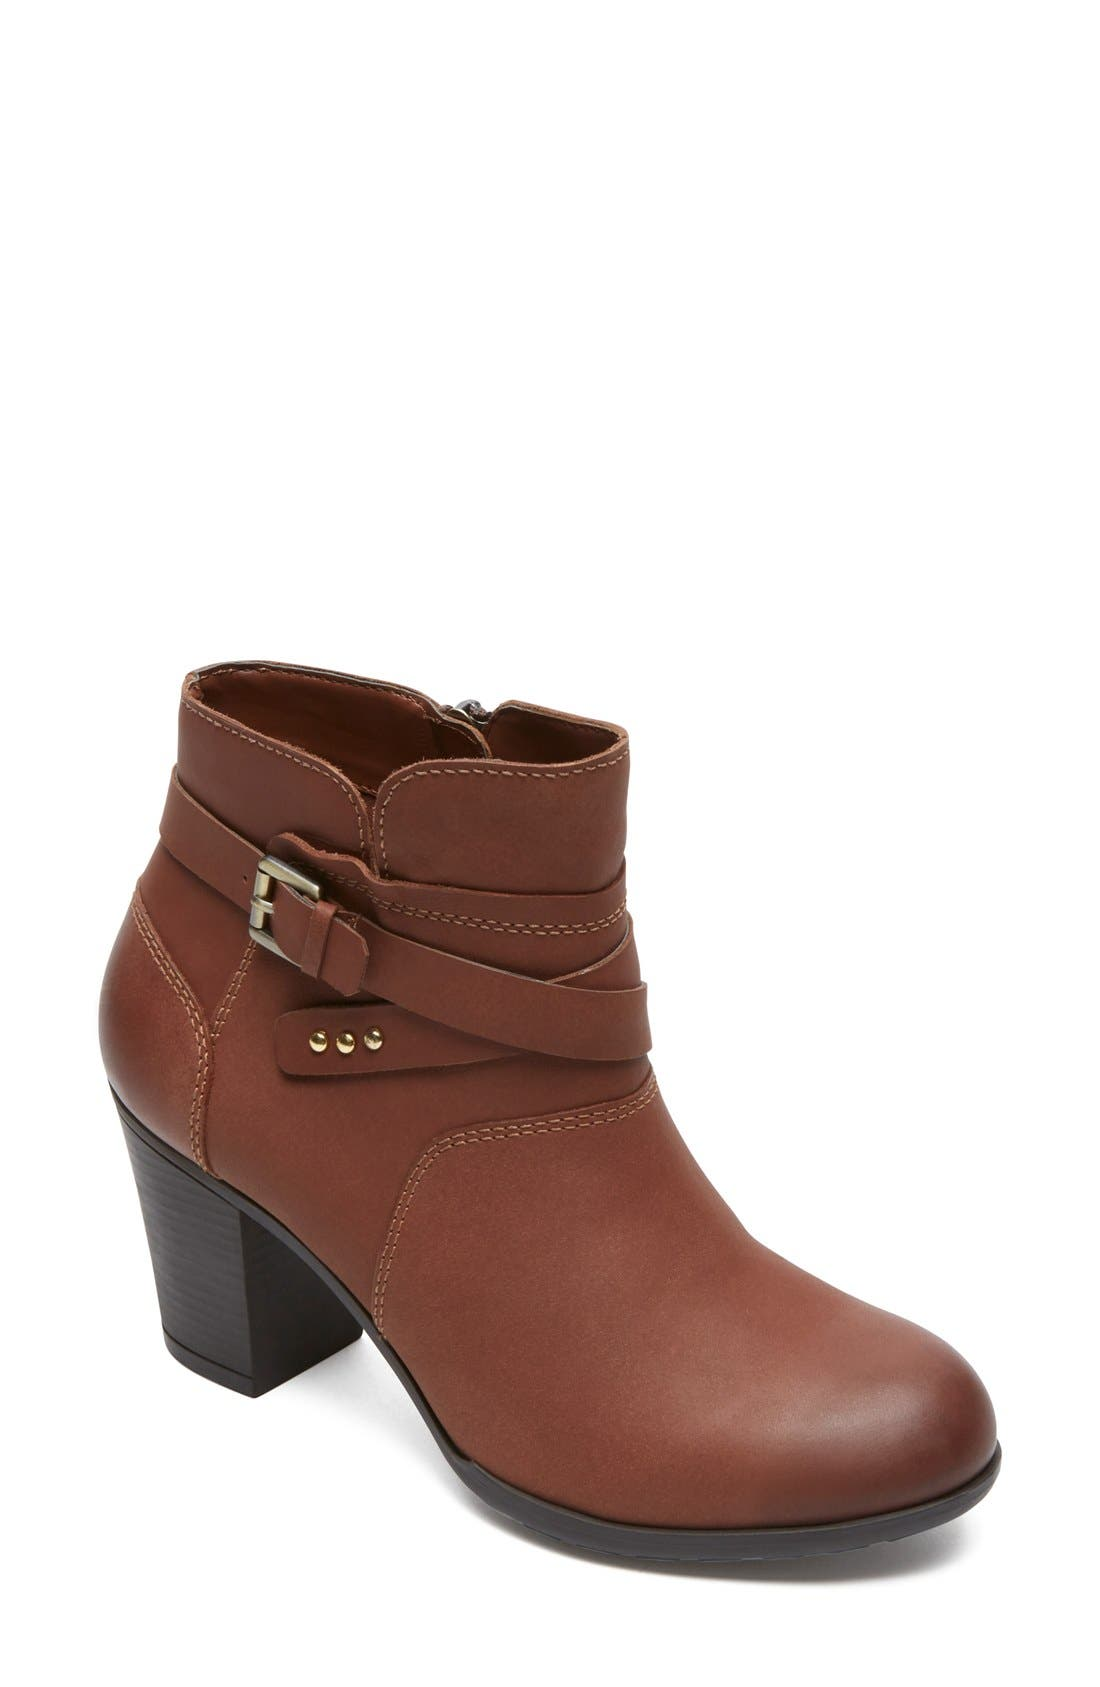 Main Image - Rockport 'City Casuals - Catriona' Bootie (Women)